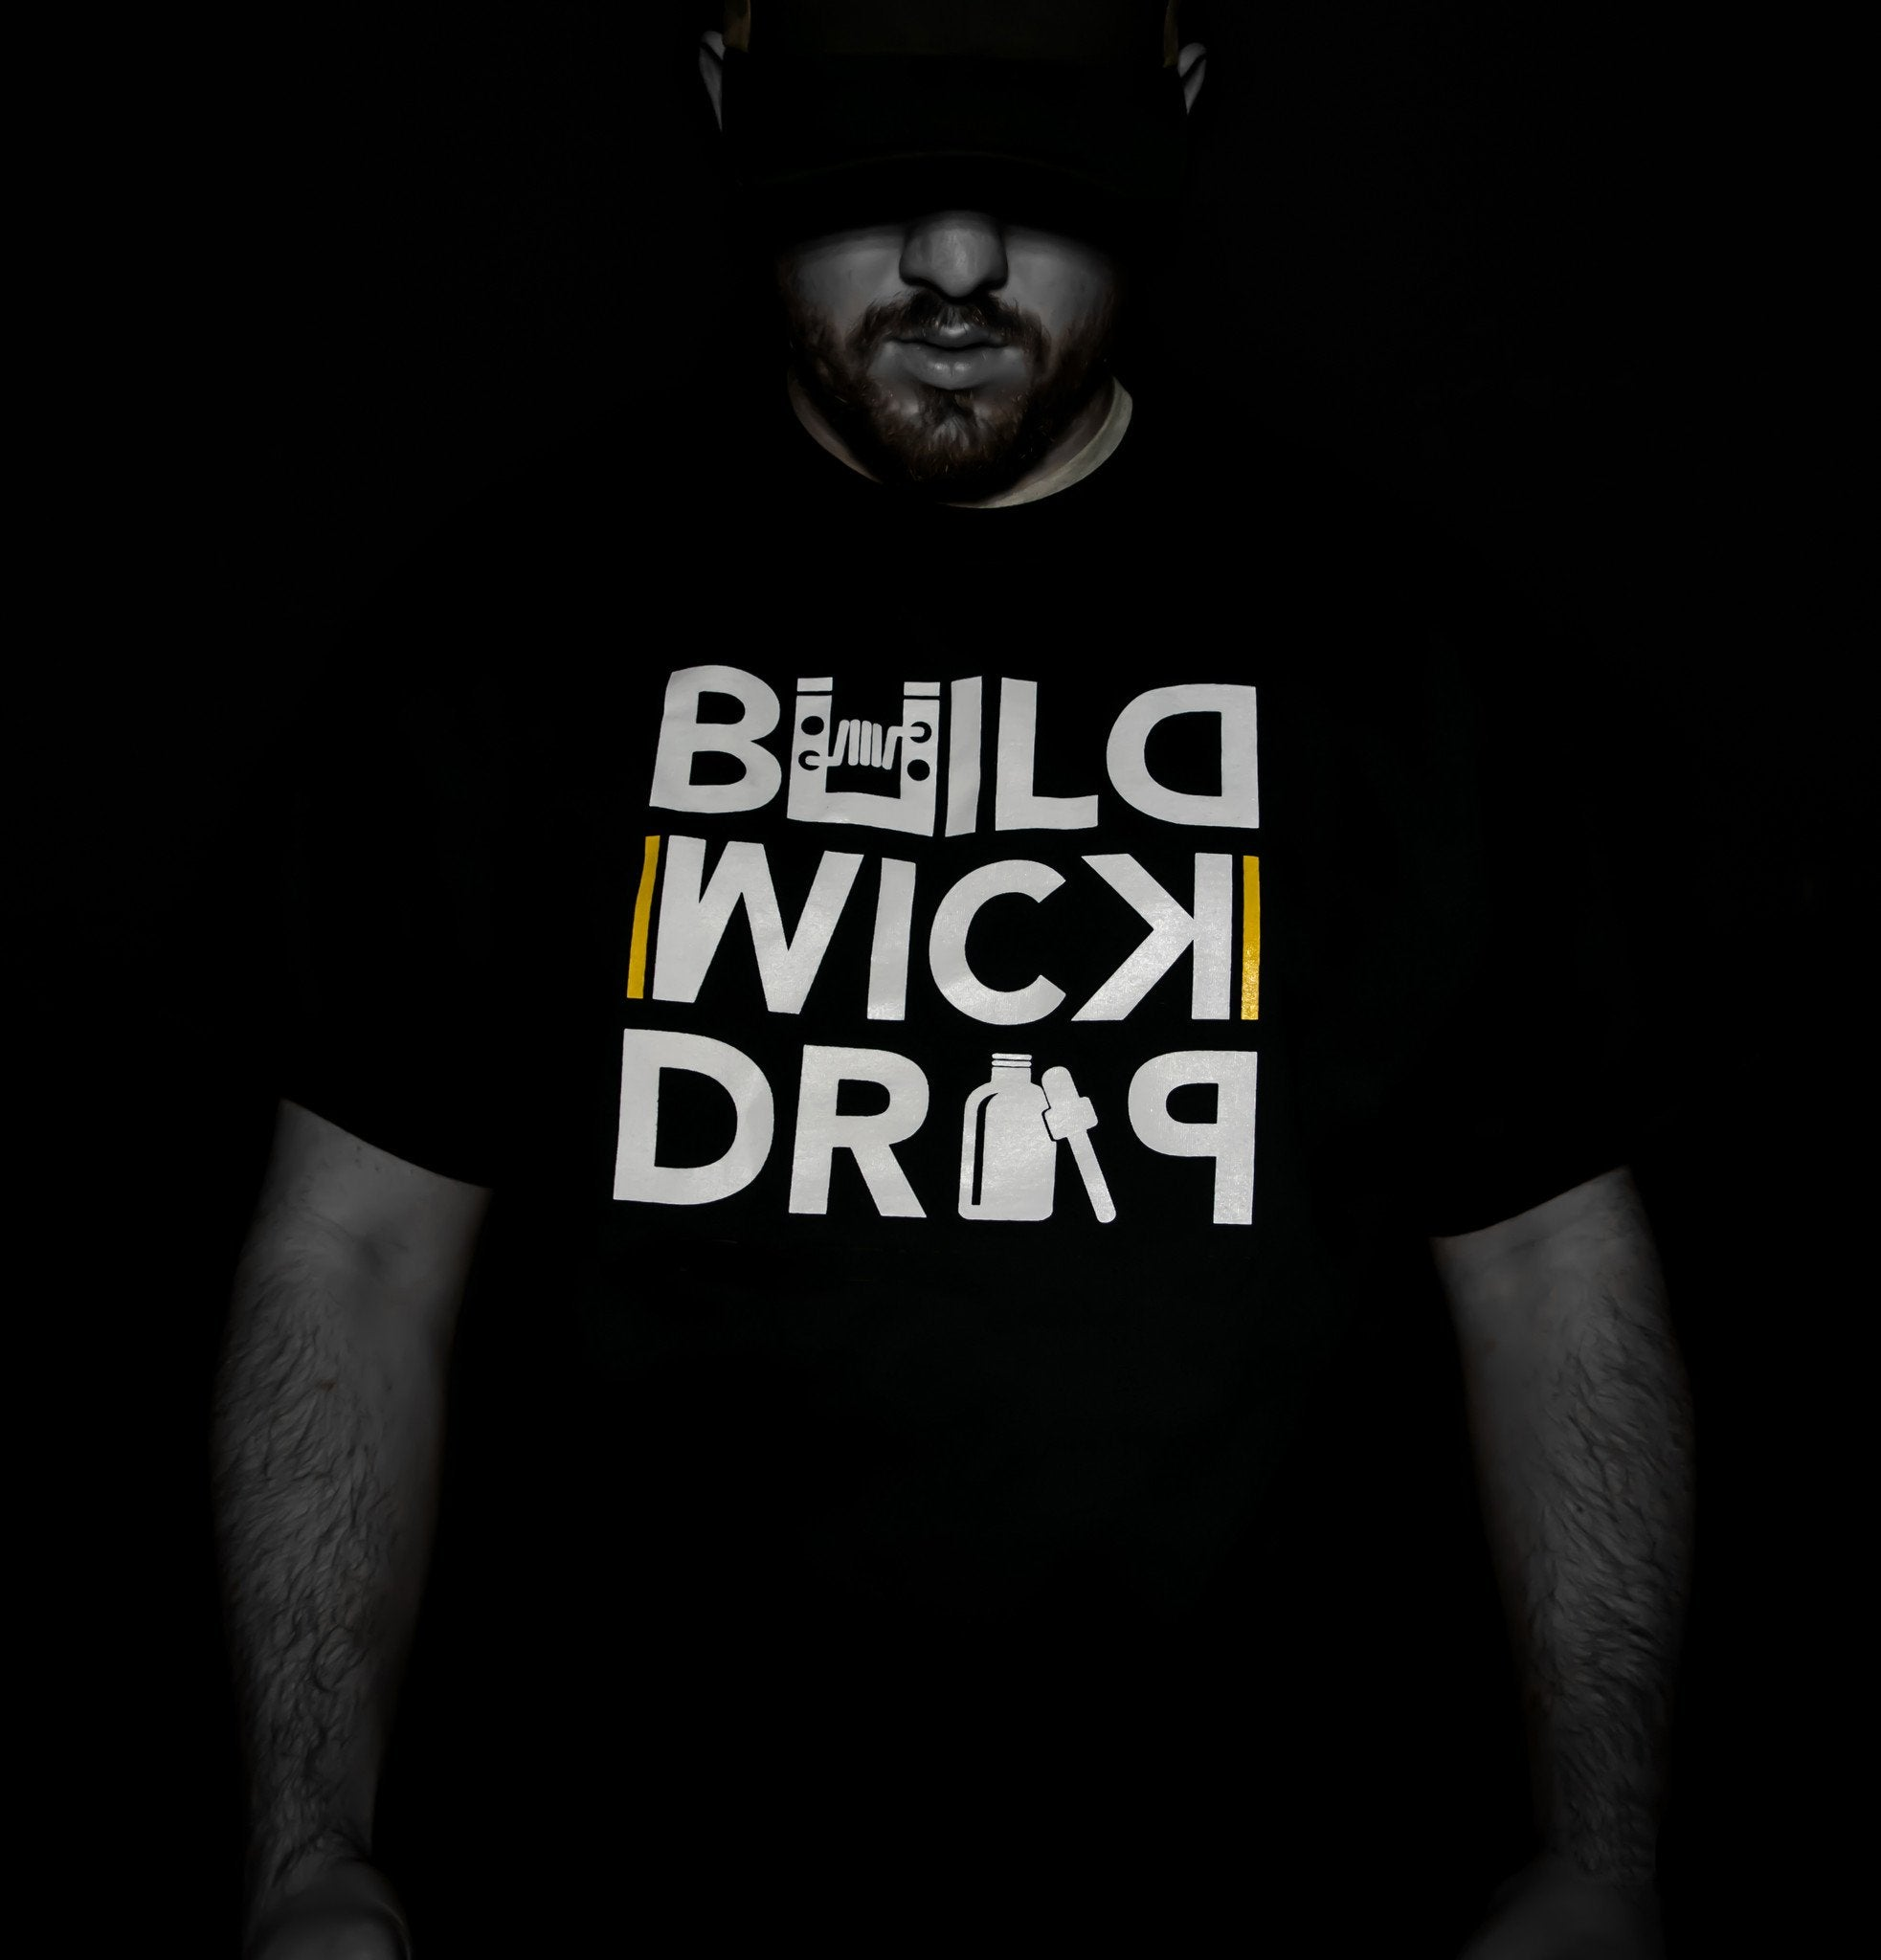 Build Wick Drip - T shirt - PURE ATOMIST